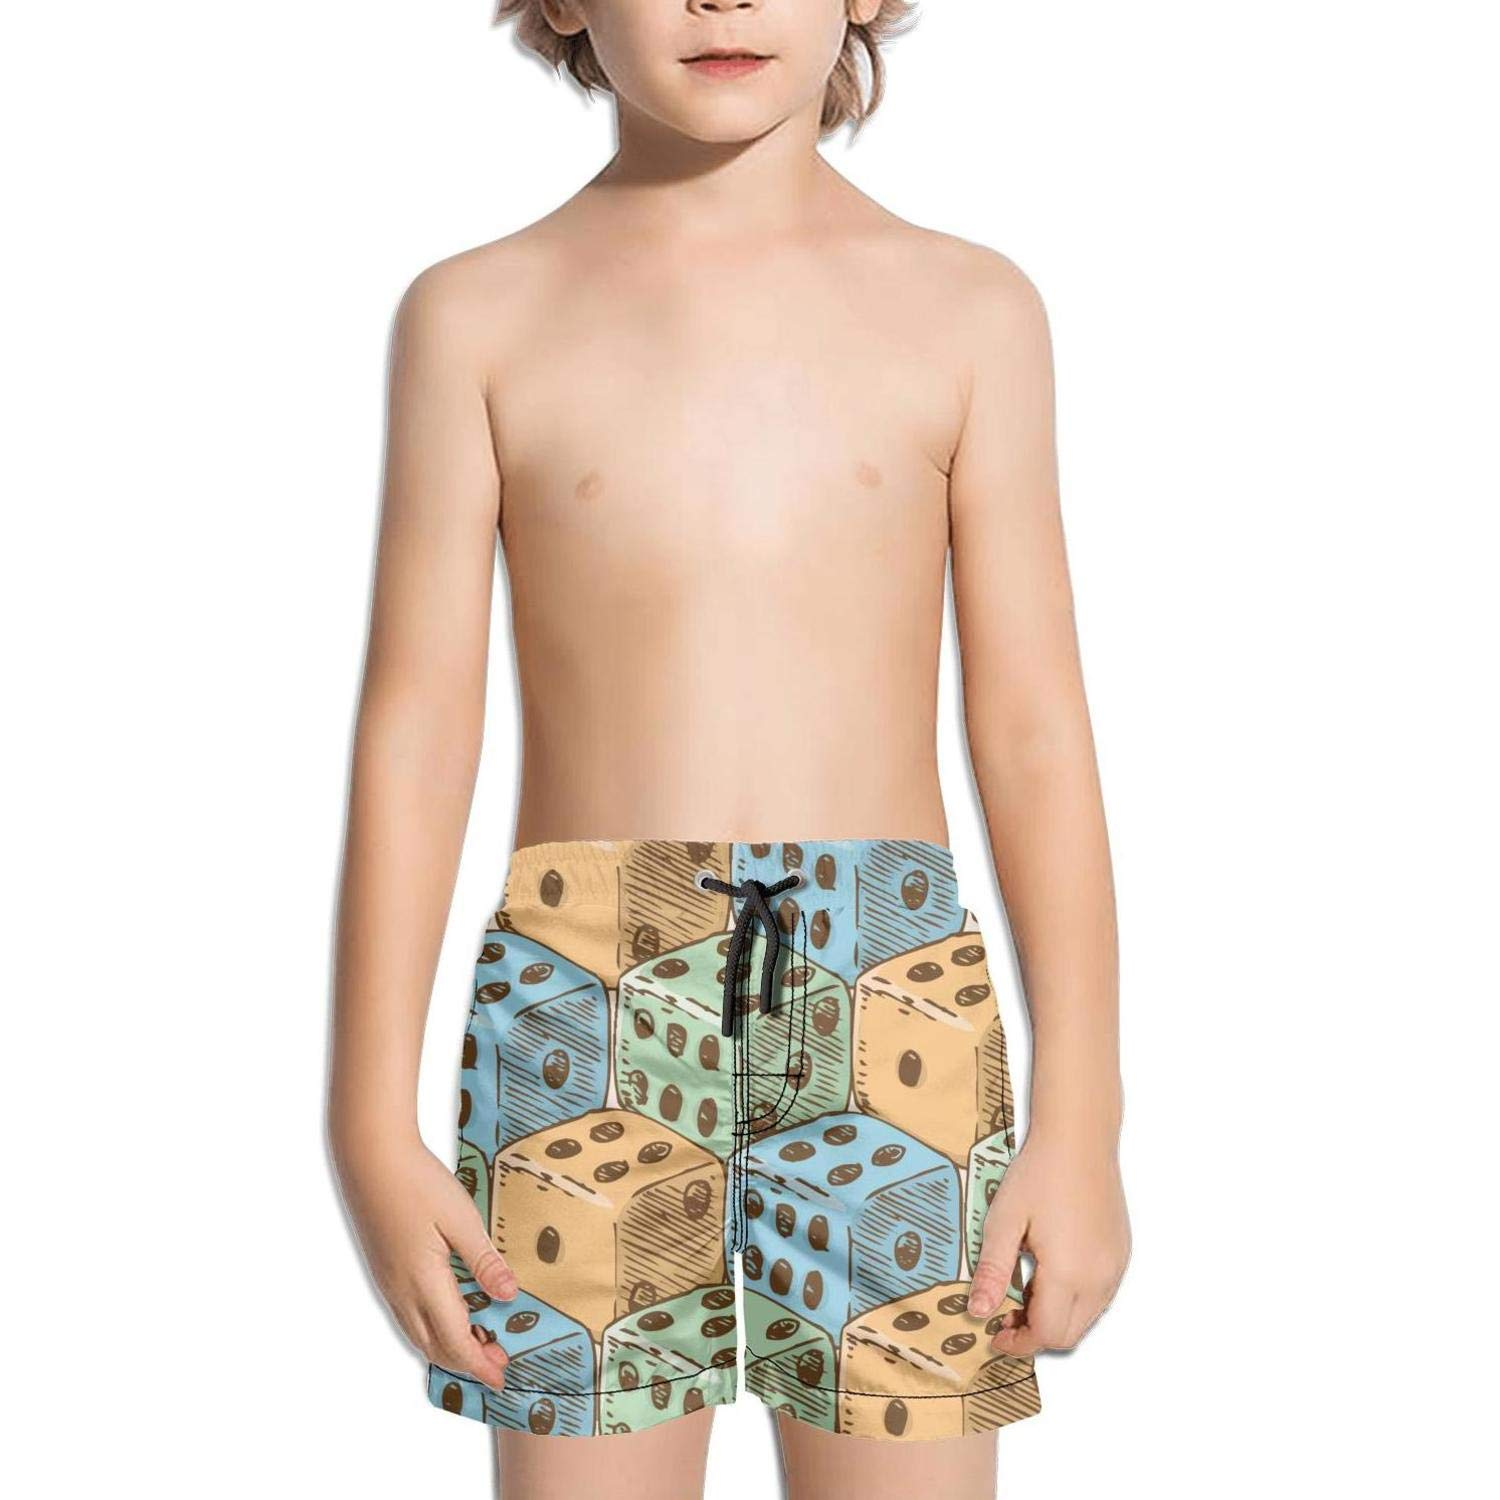 Lenard Hughes Boys Quick Dry Beach Shorts with Pockets Color Dices Game Swim Trunks for Summer